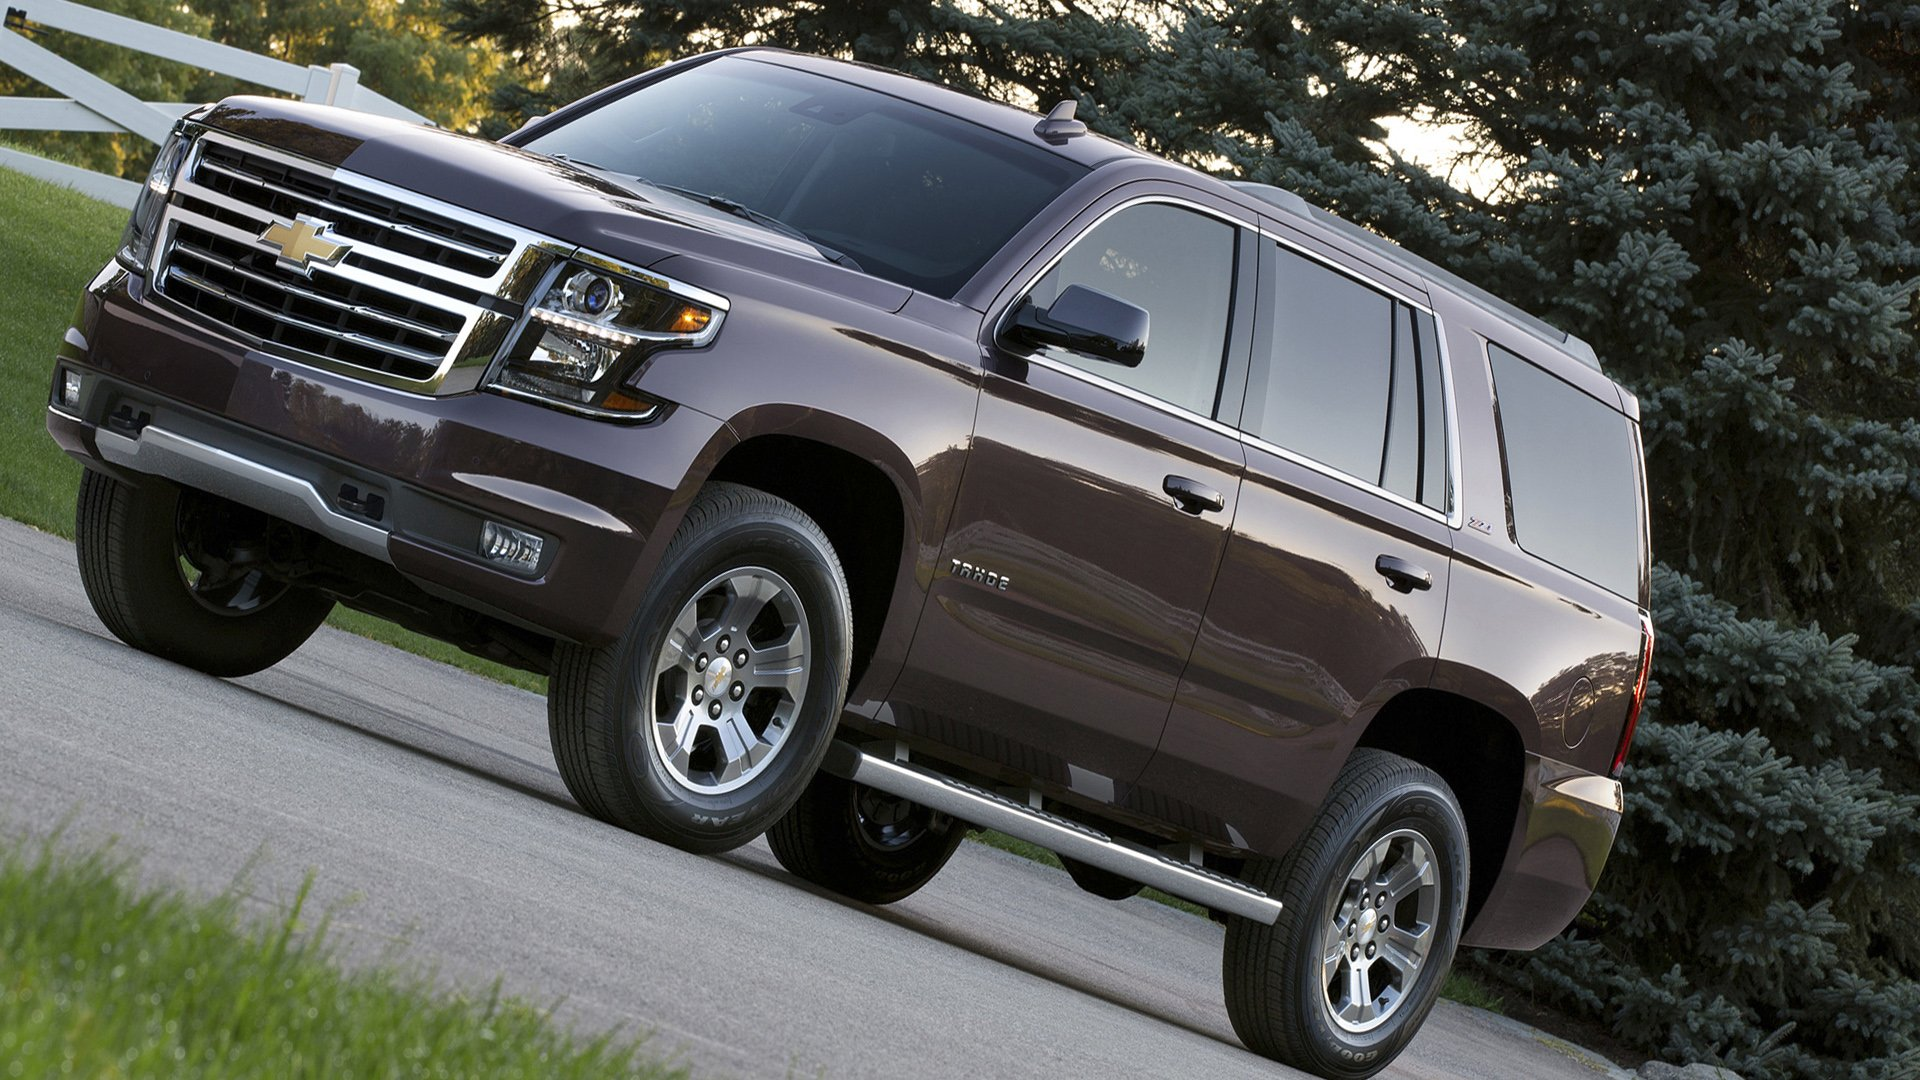 New 2019 Chevrolet Tahoe Exterior Changes